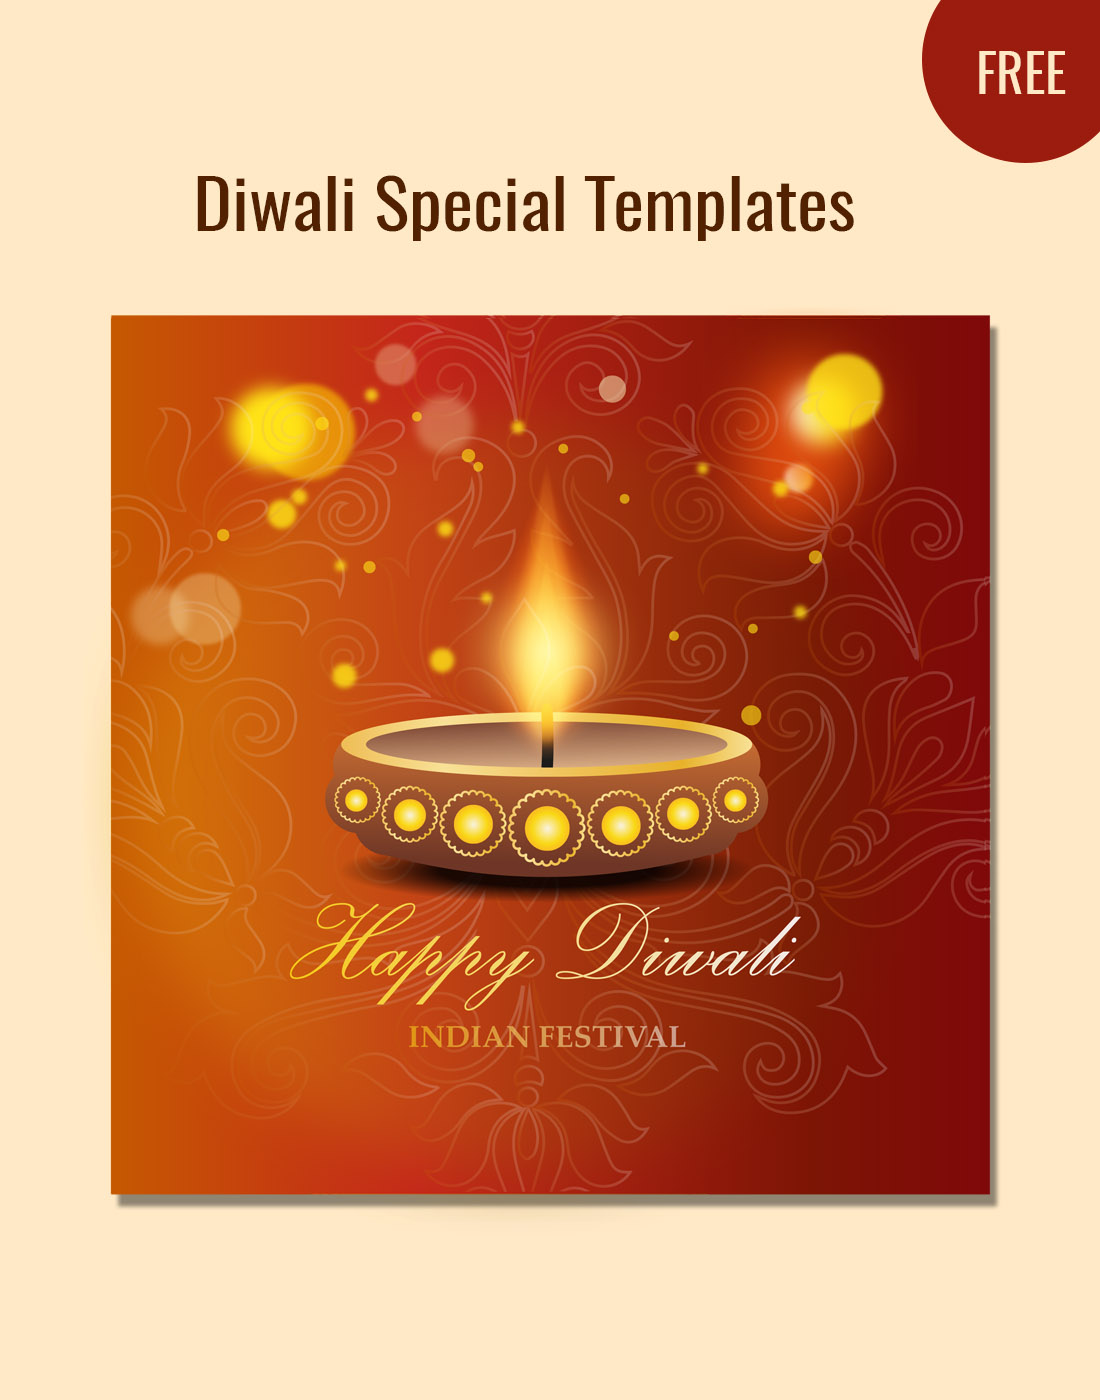 diwali templates new